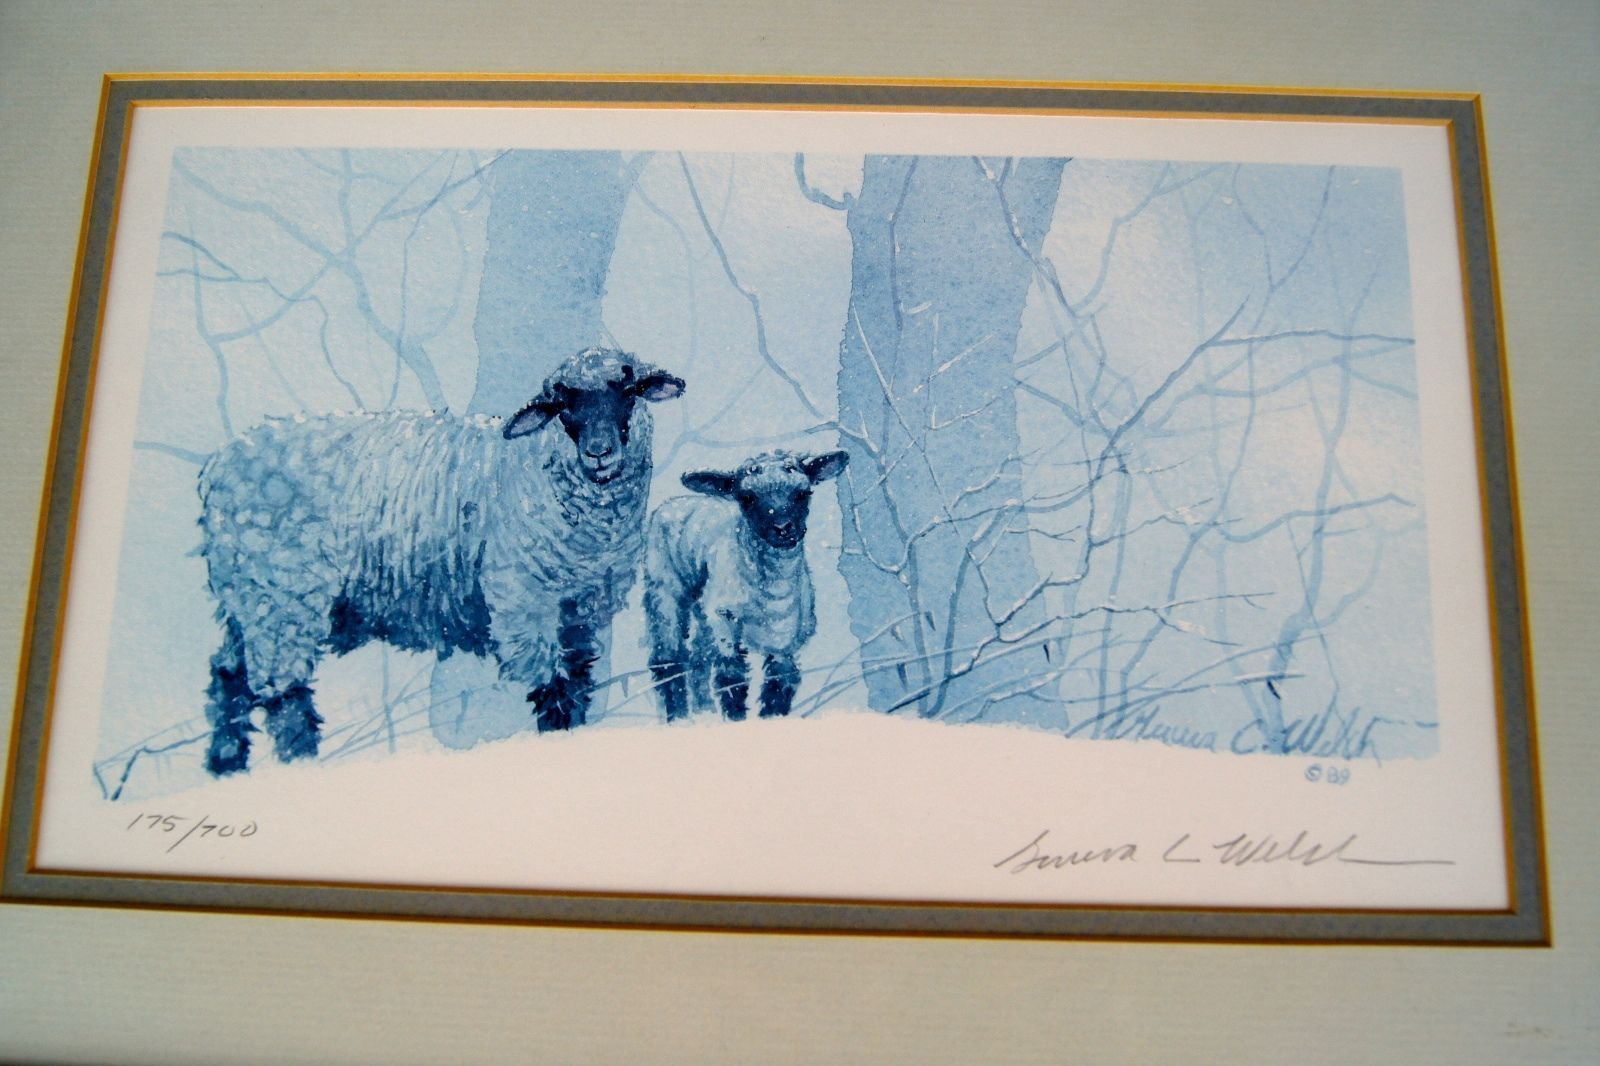 Geneva Welch Print Signed and Numbered 175/700 1989 Framed Shabby Chic Sheep